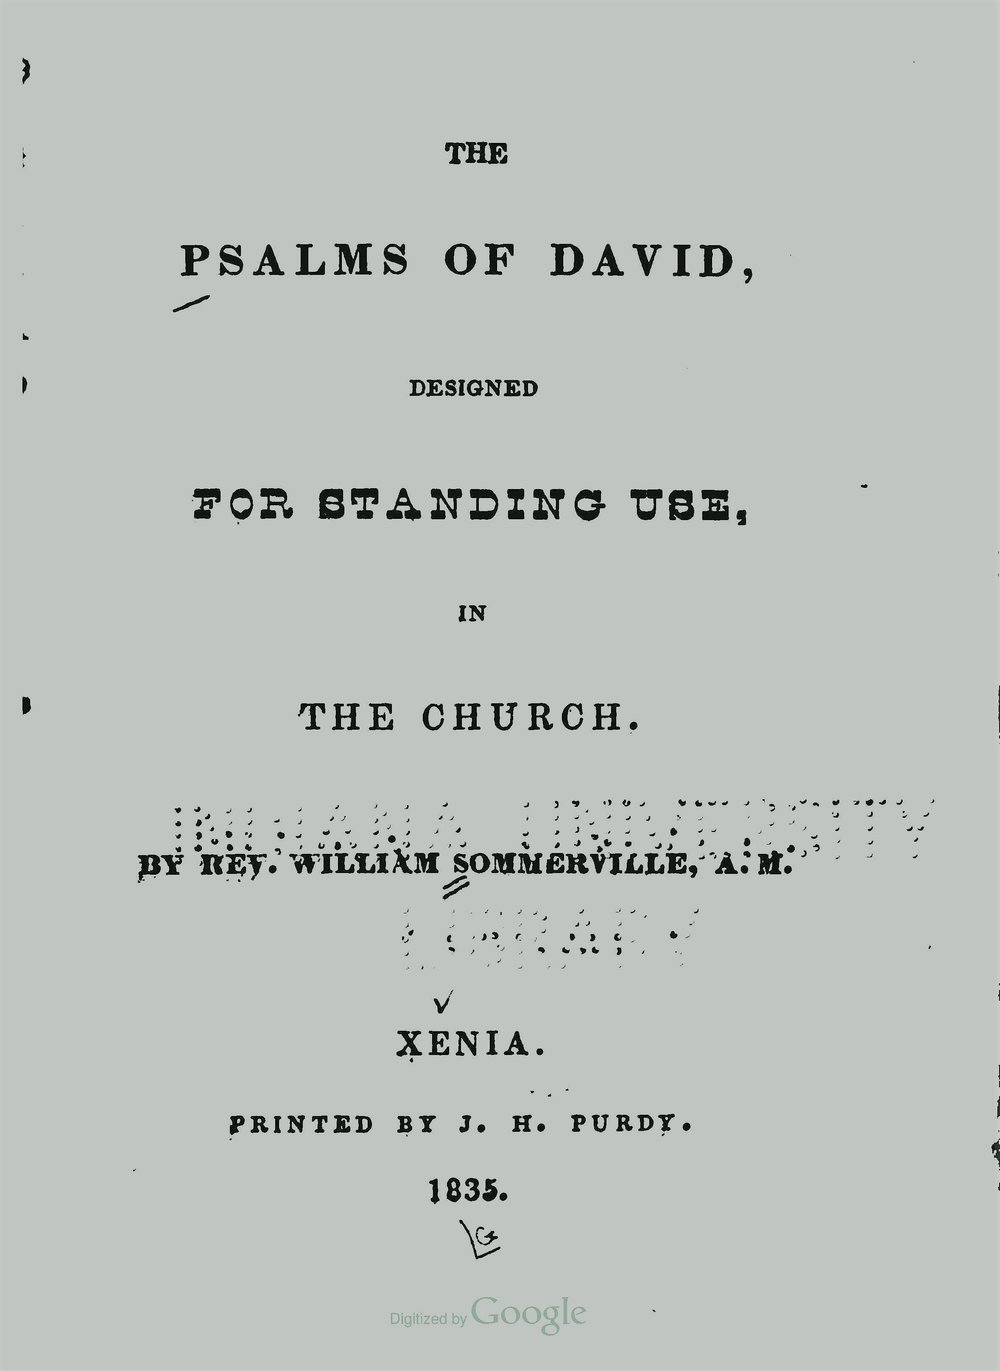 Sommerville, William, The Psalms of David for Standing Use Title Page.jpg